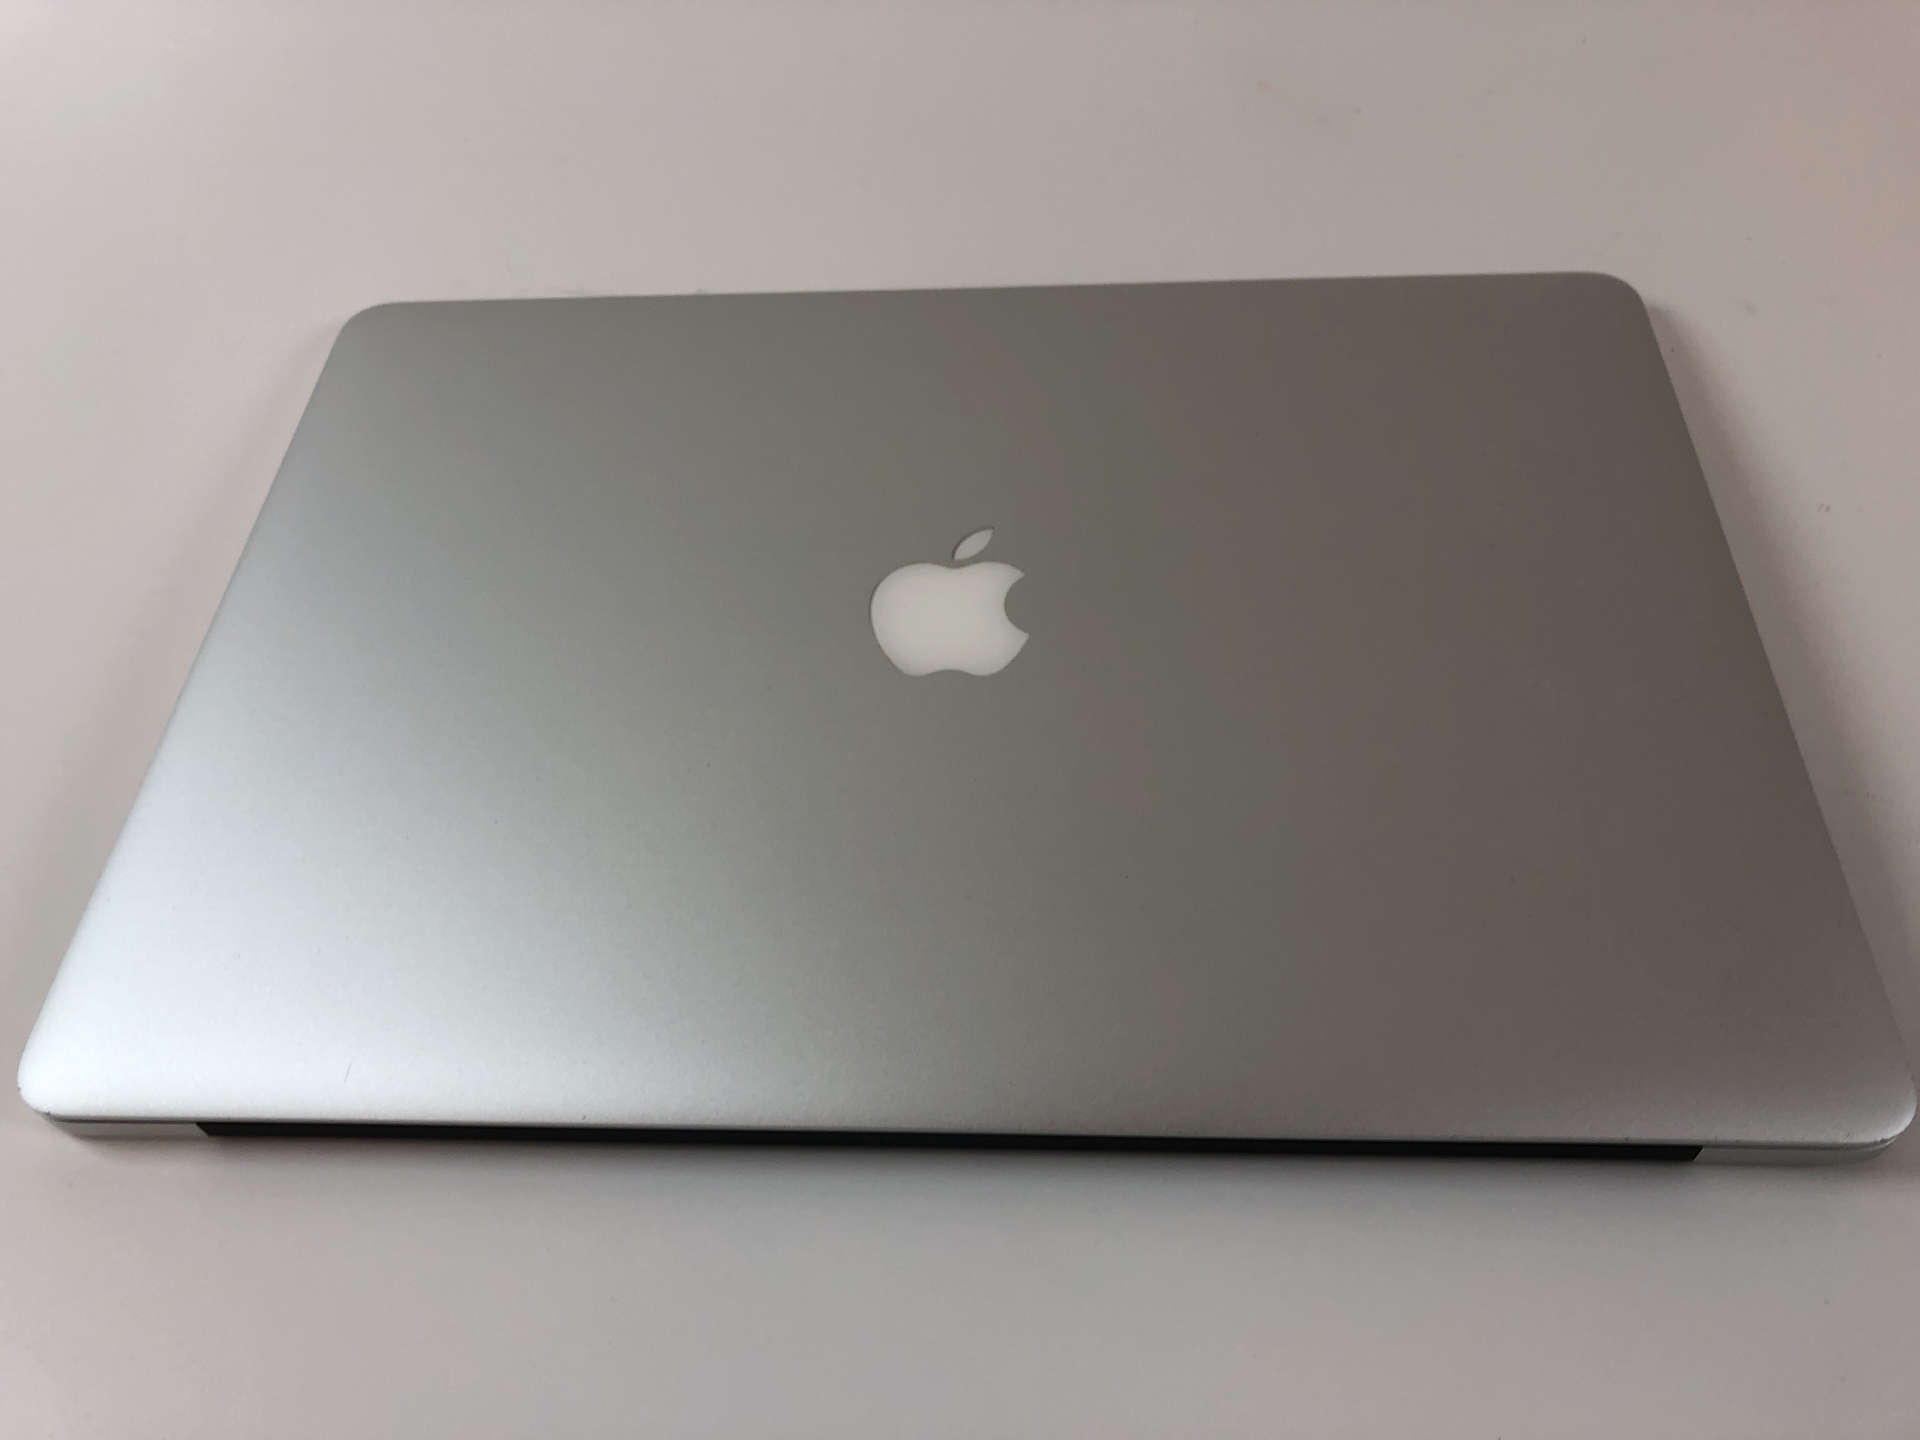 "MacBook Pro Retina 15"" Mid 2015 (Intel Quad-Core i7 2.2 GHz 16 GB RAM 256 GB SSD), Intel Quad-Core i7 2.2 GHz, 16 GB RAM, 256 GB SSD, Kuva 2"